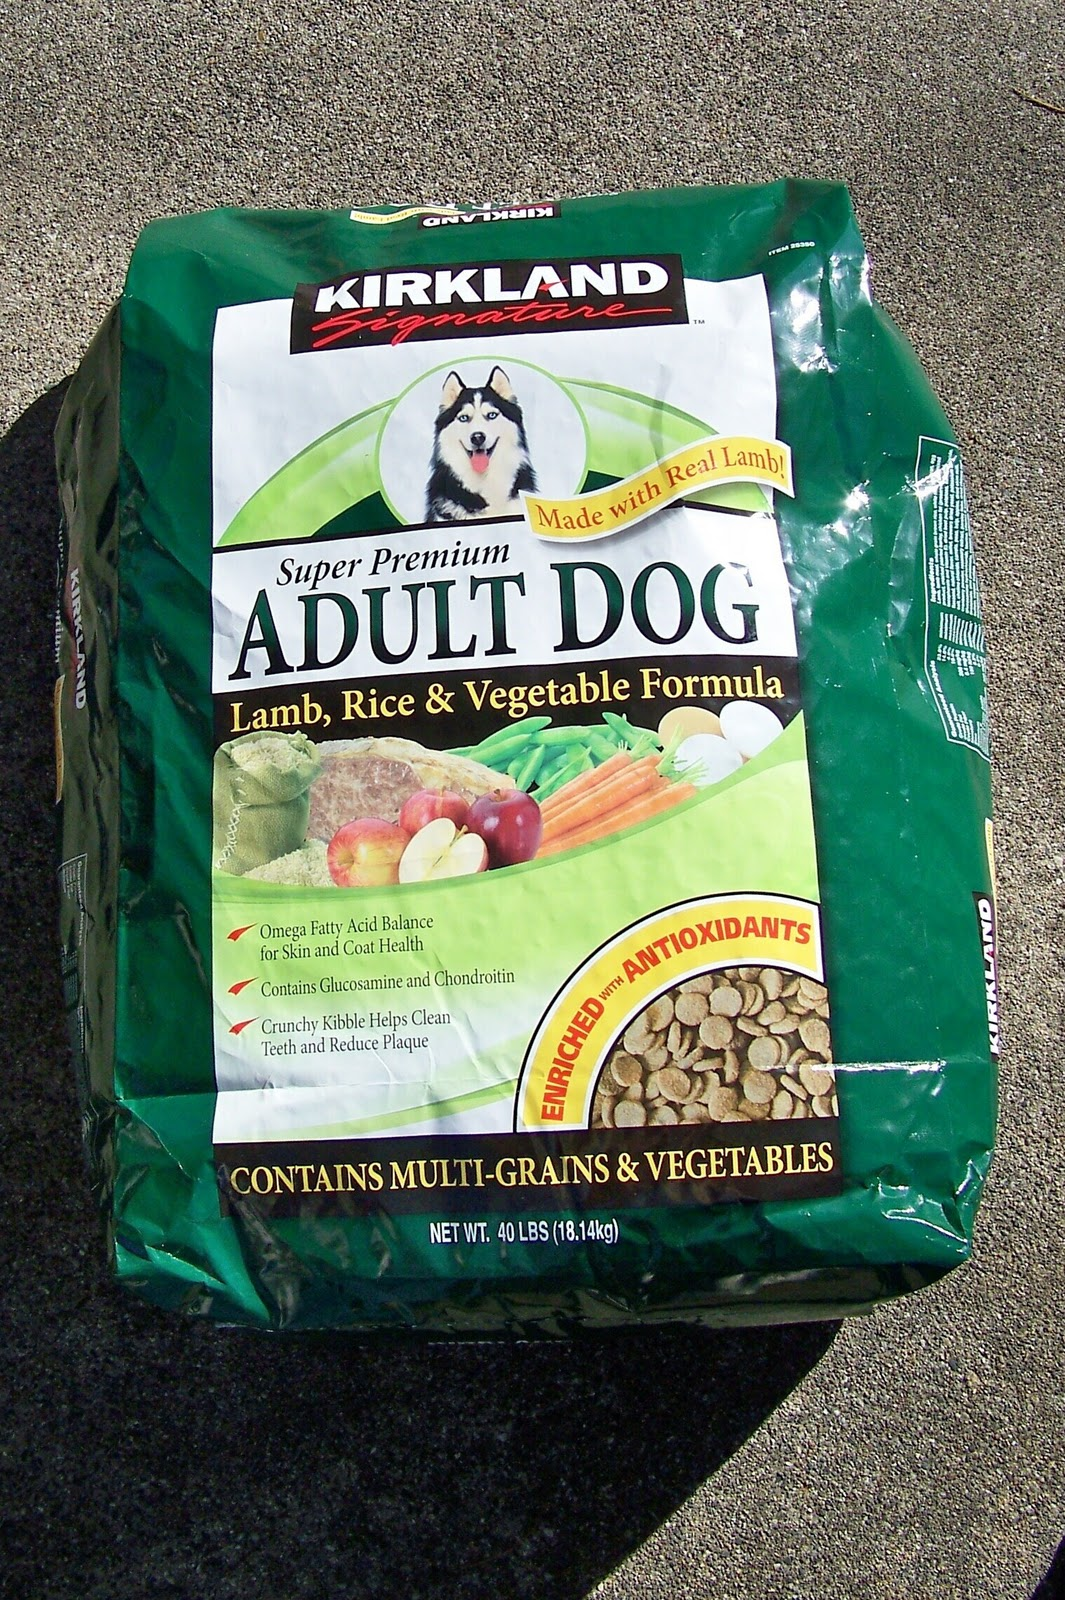 Costco Cuisine Costco Canine Cuisine Kirkland Signature Dog Food